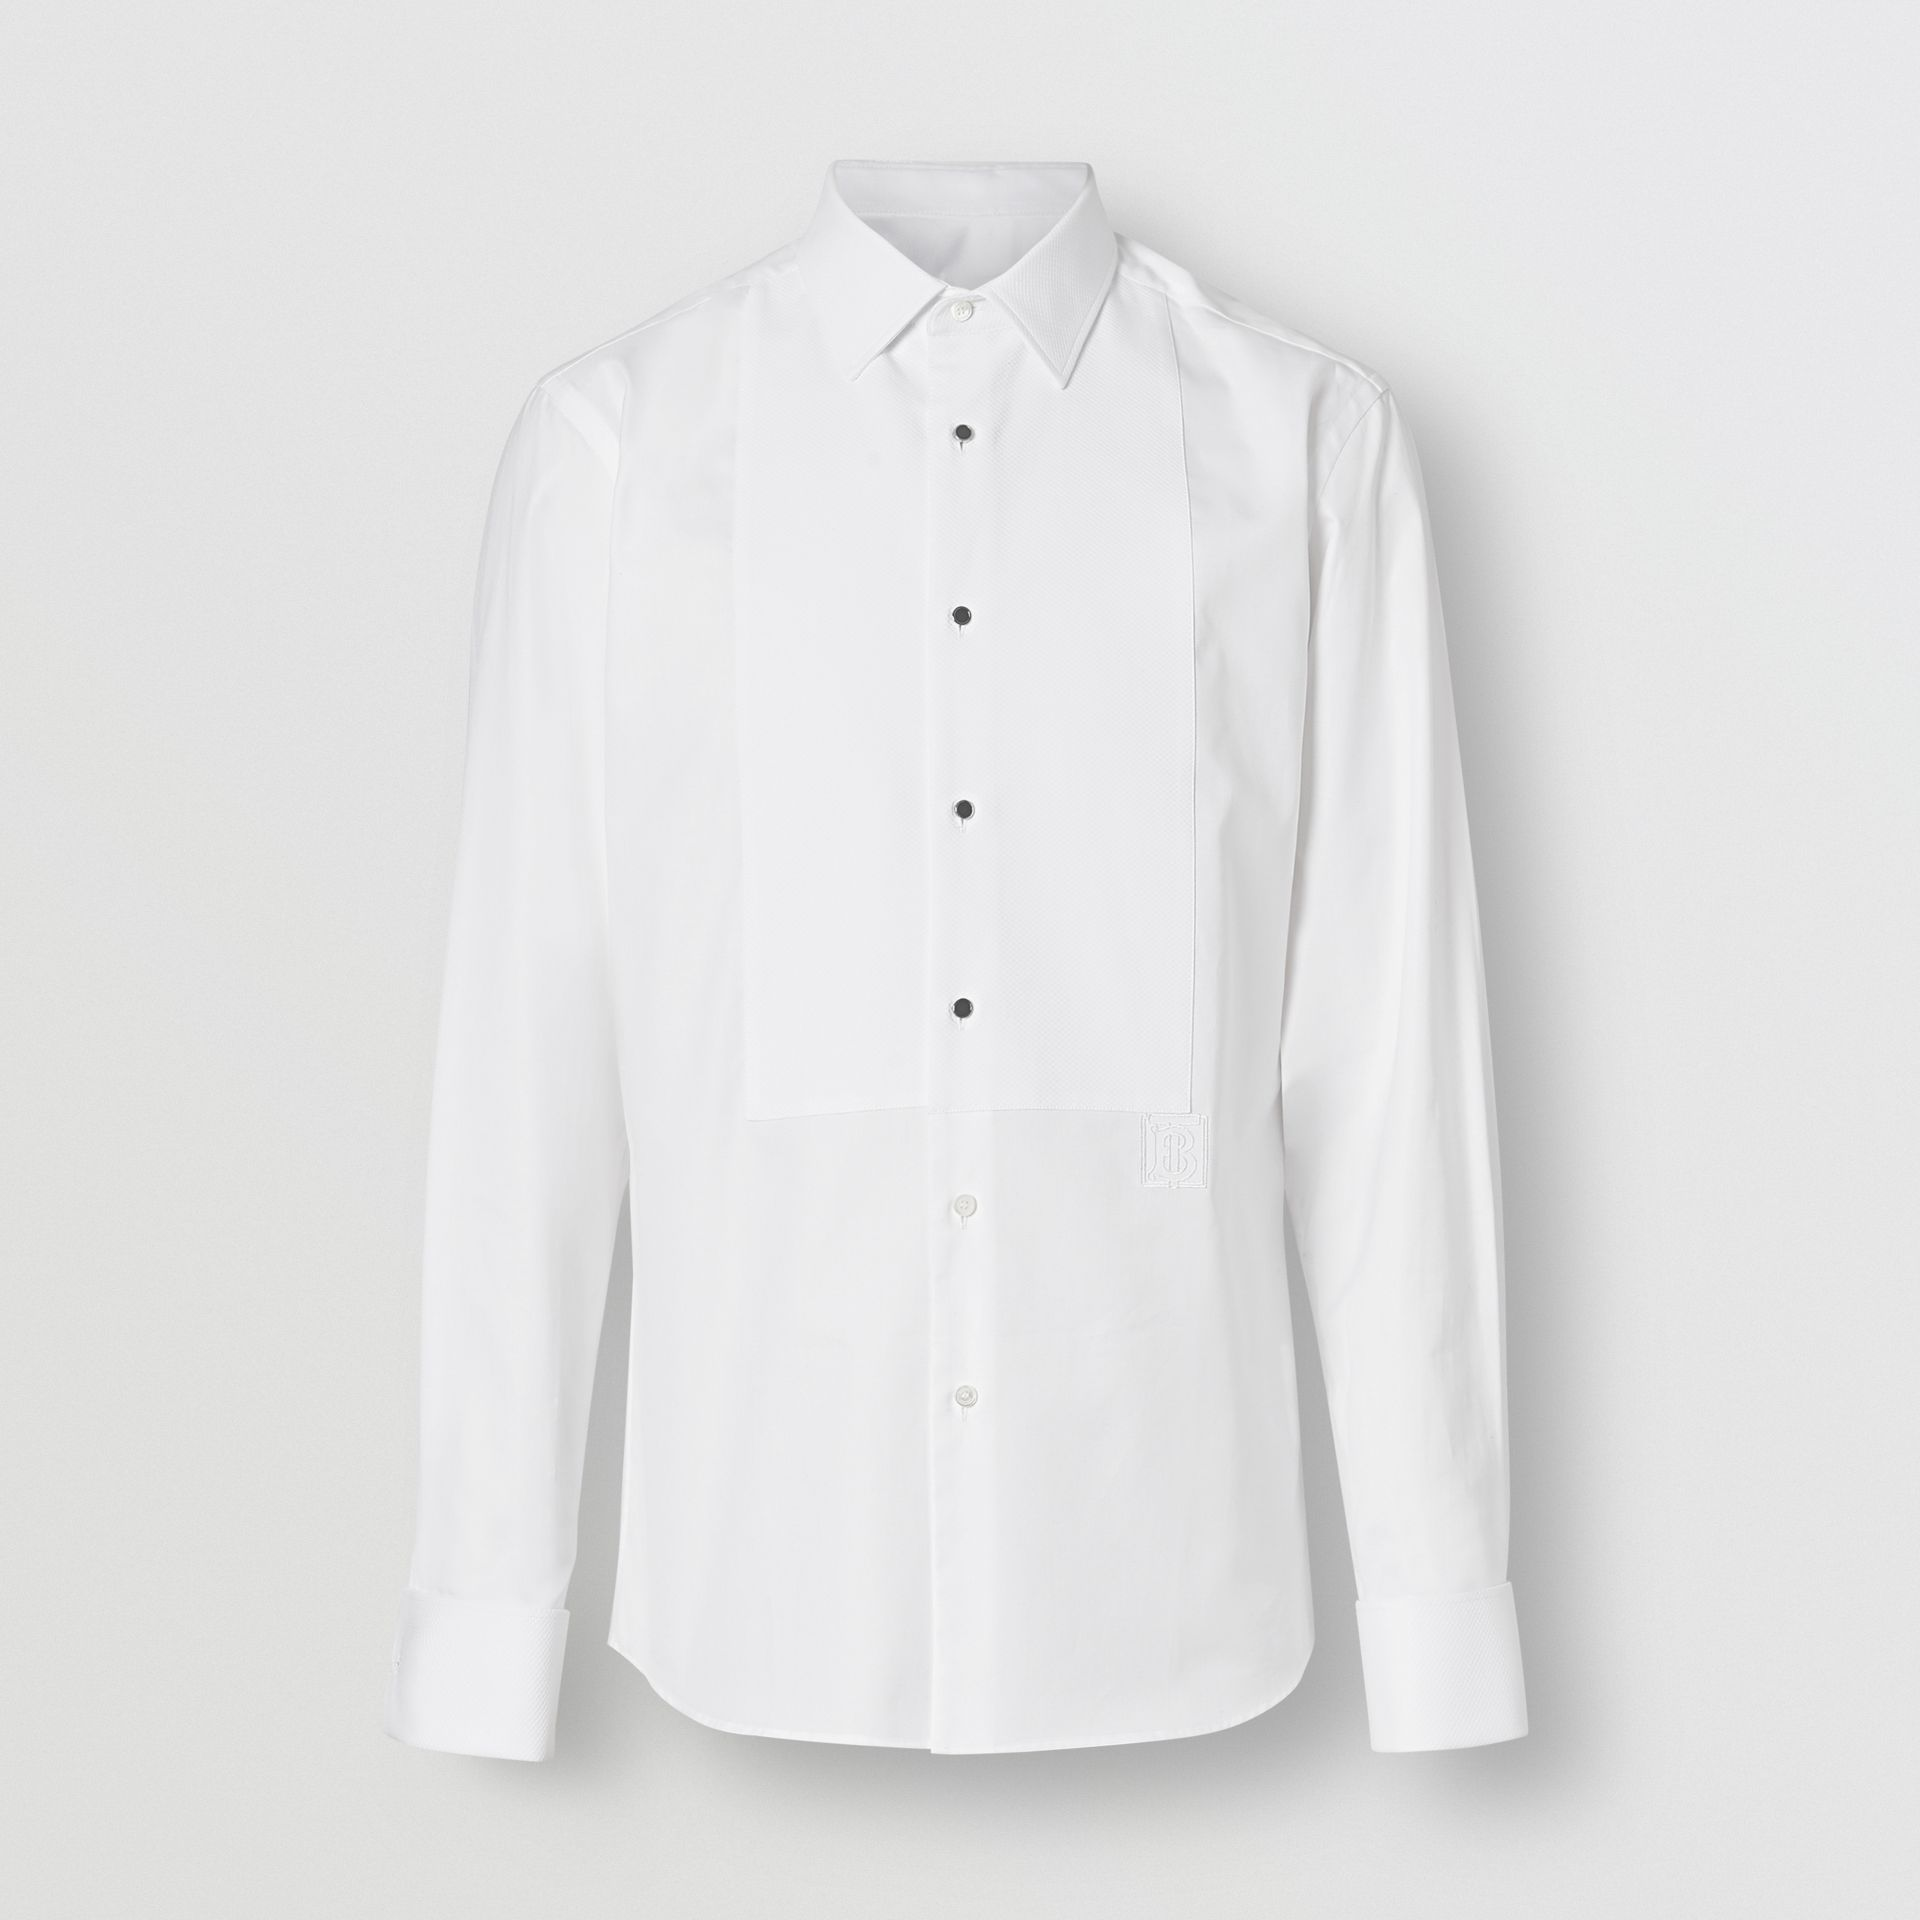 Panelled Bib Cotton Oxford Dress Shirt in White - Men | Burberry - gallery image 3